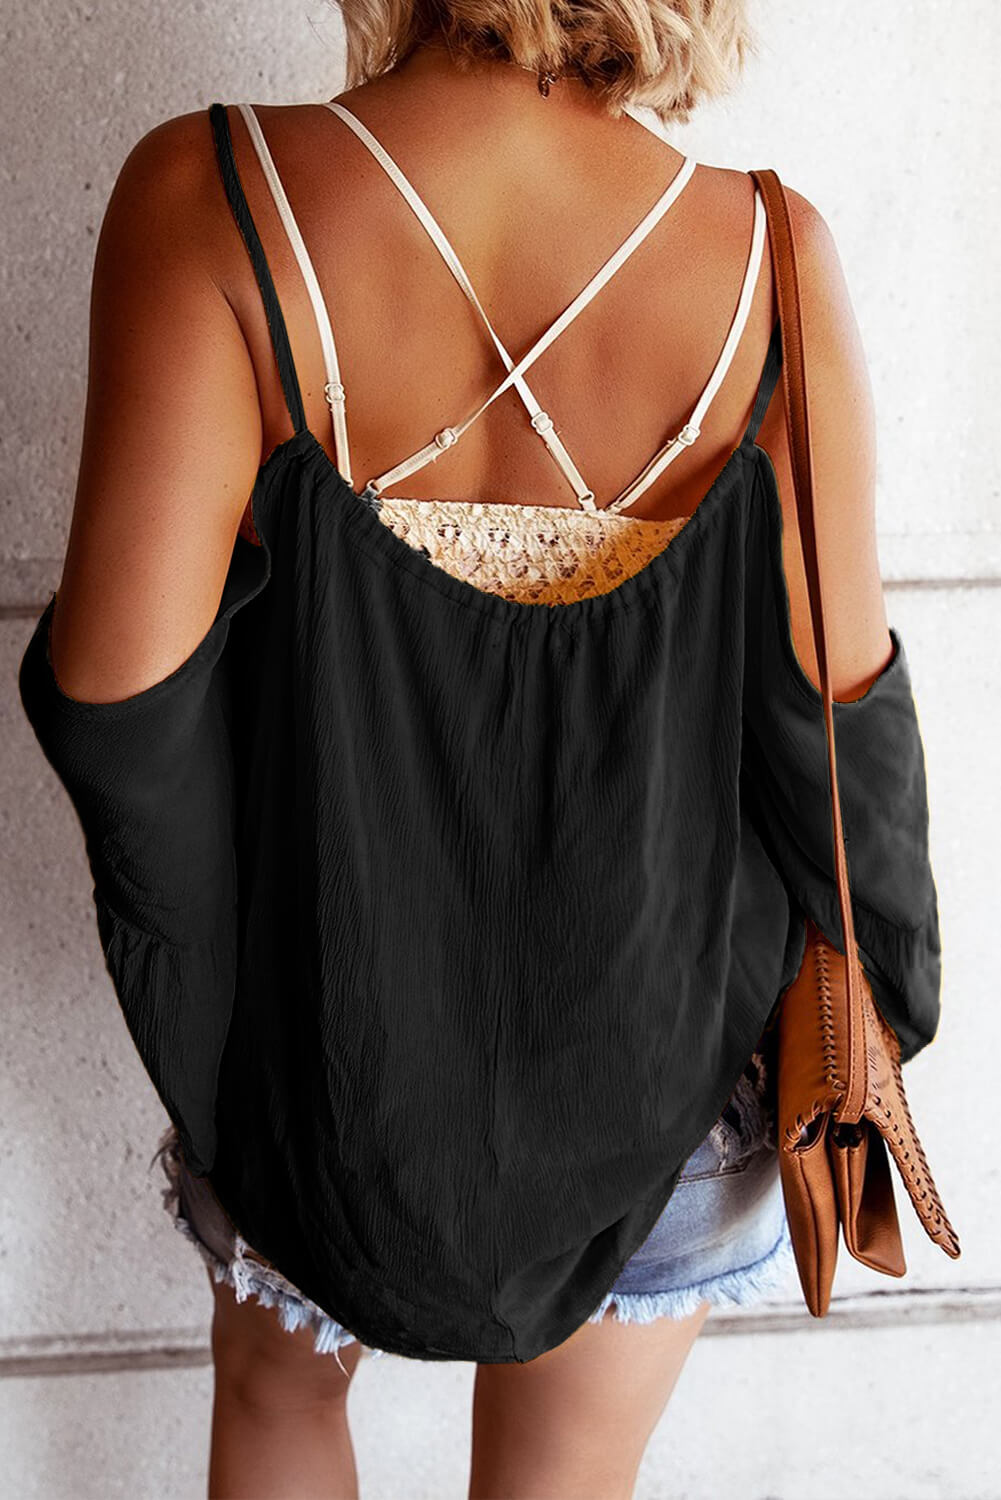 Black Flare Sleeve Spaghetti Strap Cold Shoulder Ruffled Blouse Blouses & Shirts Discount Designer Fashion Clothes Shoes Bags Women Men Kids Children Black Owned Business